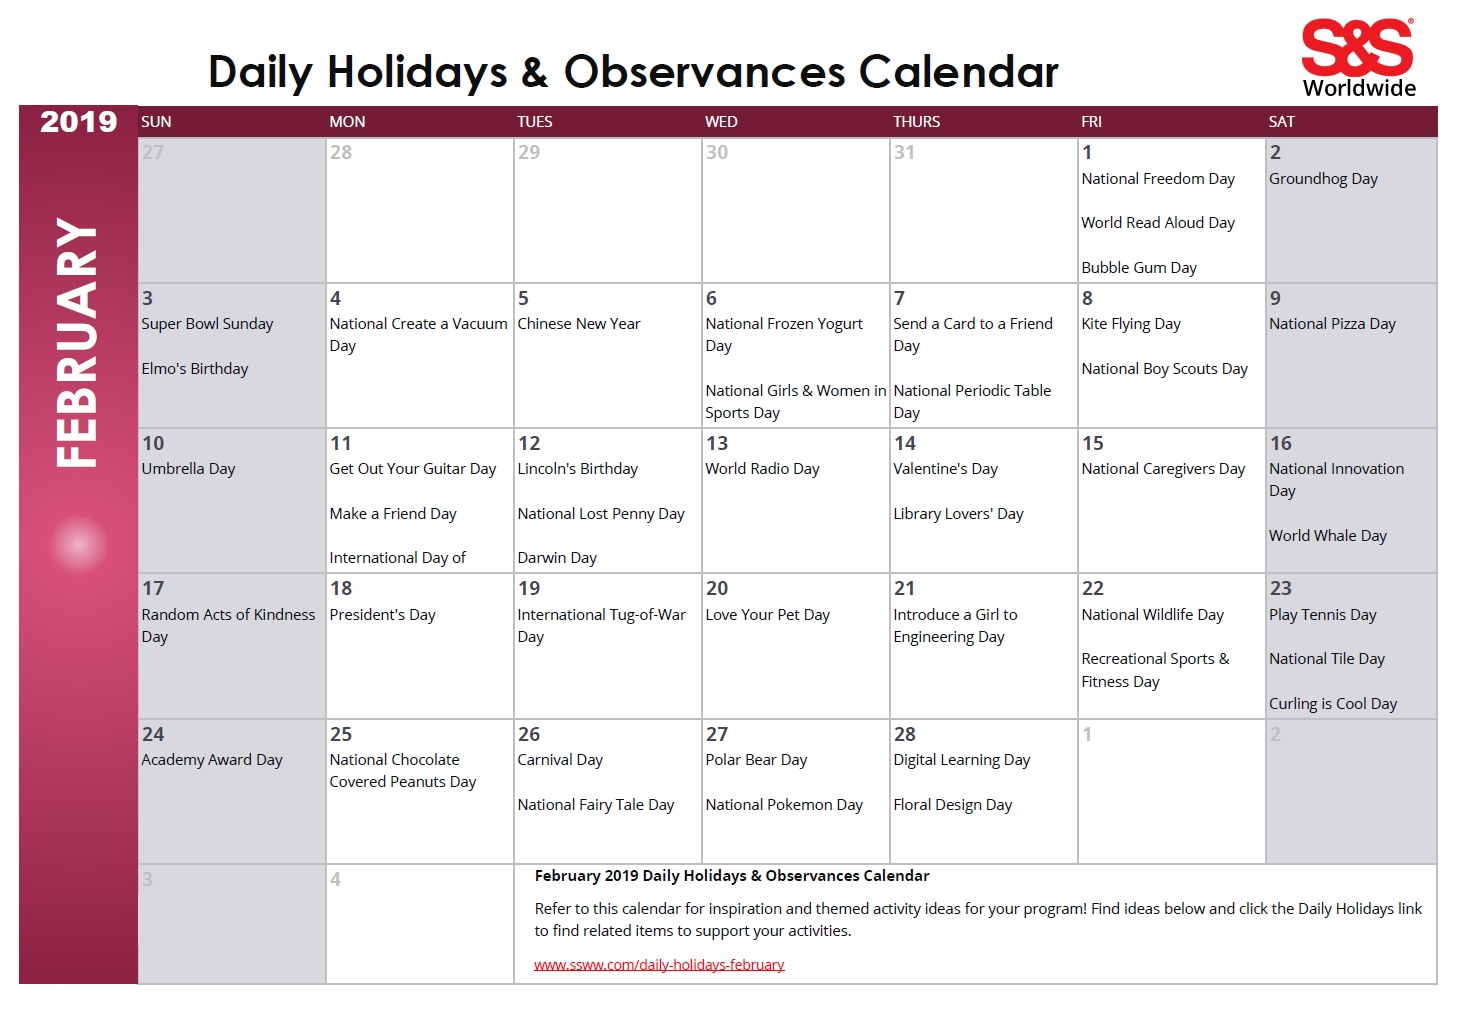 February Daily Holidays & Observances Printable Calendar - S&s Blog  Printable Calendar Day By Day